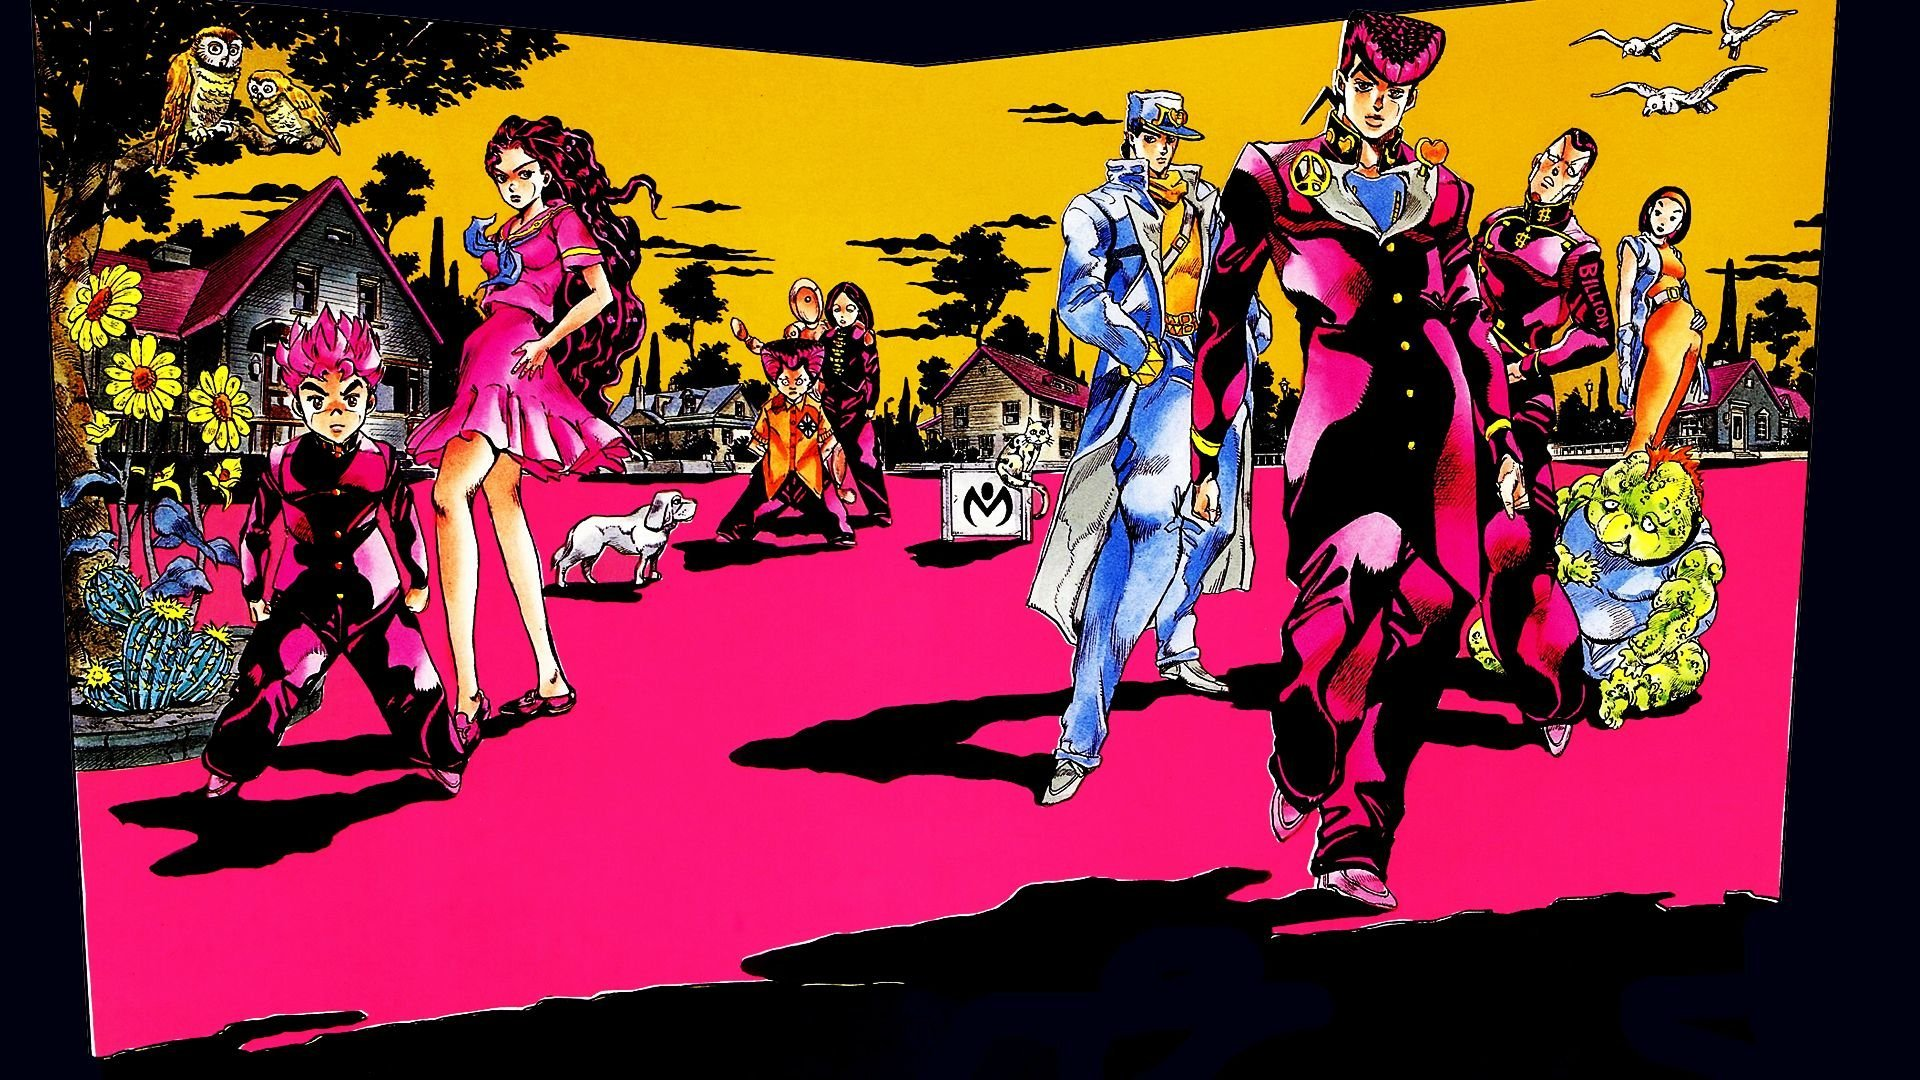 JoJo's Bizarre Adventure – Diamond is Unbreakable sur Crunchyroll